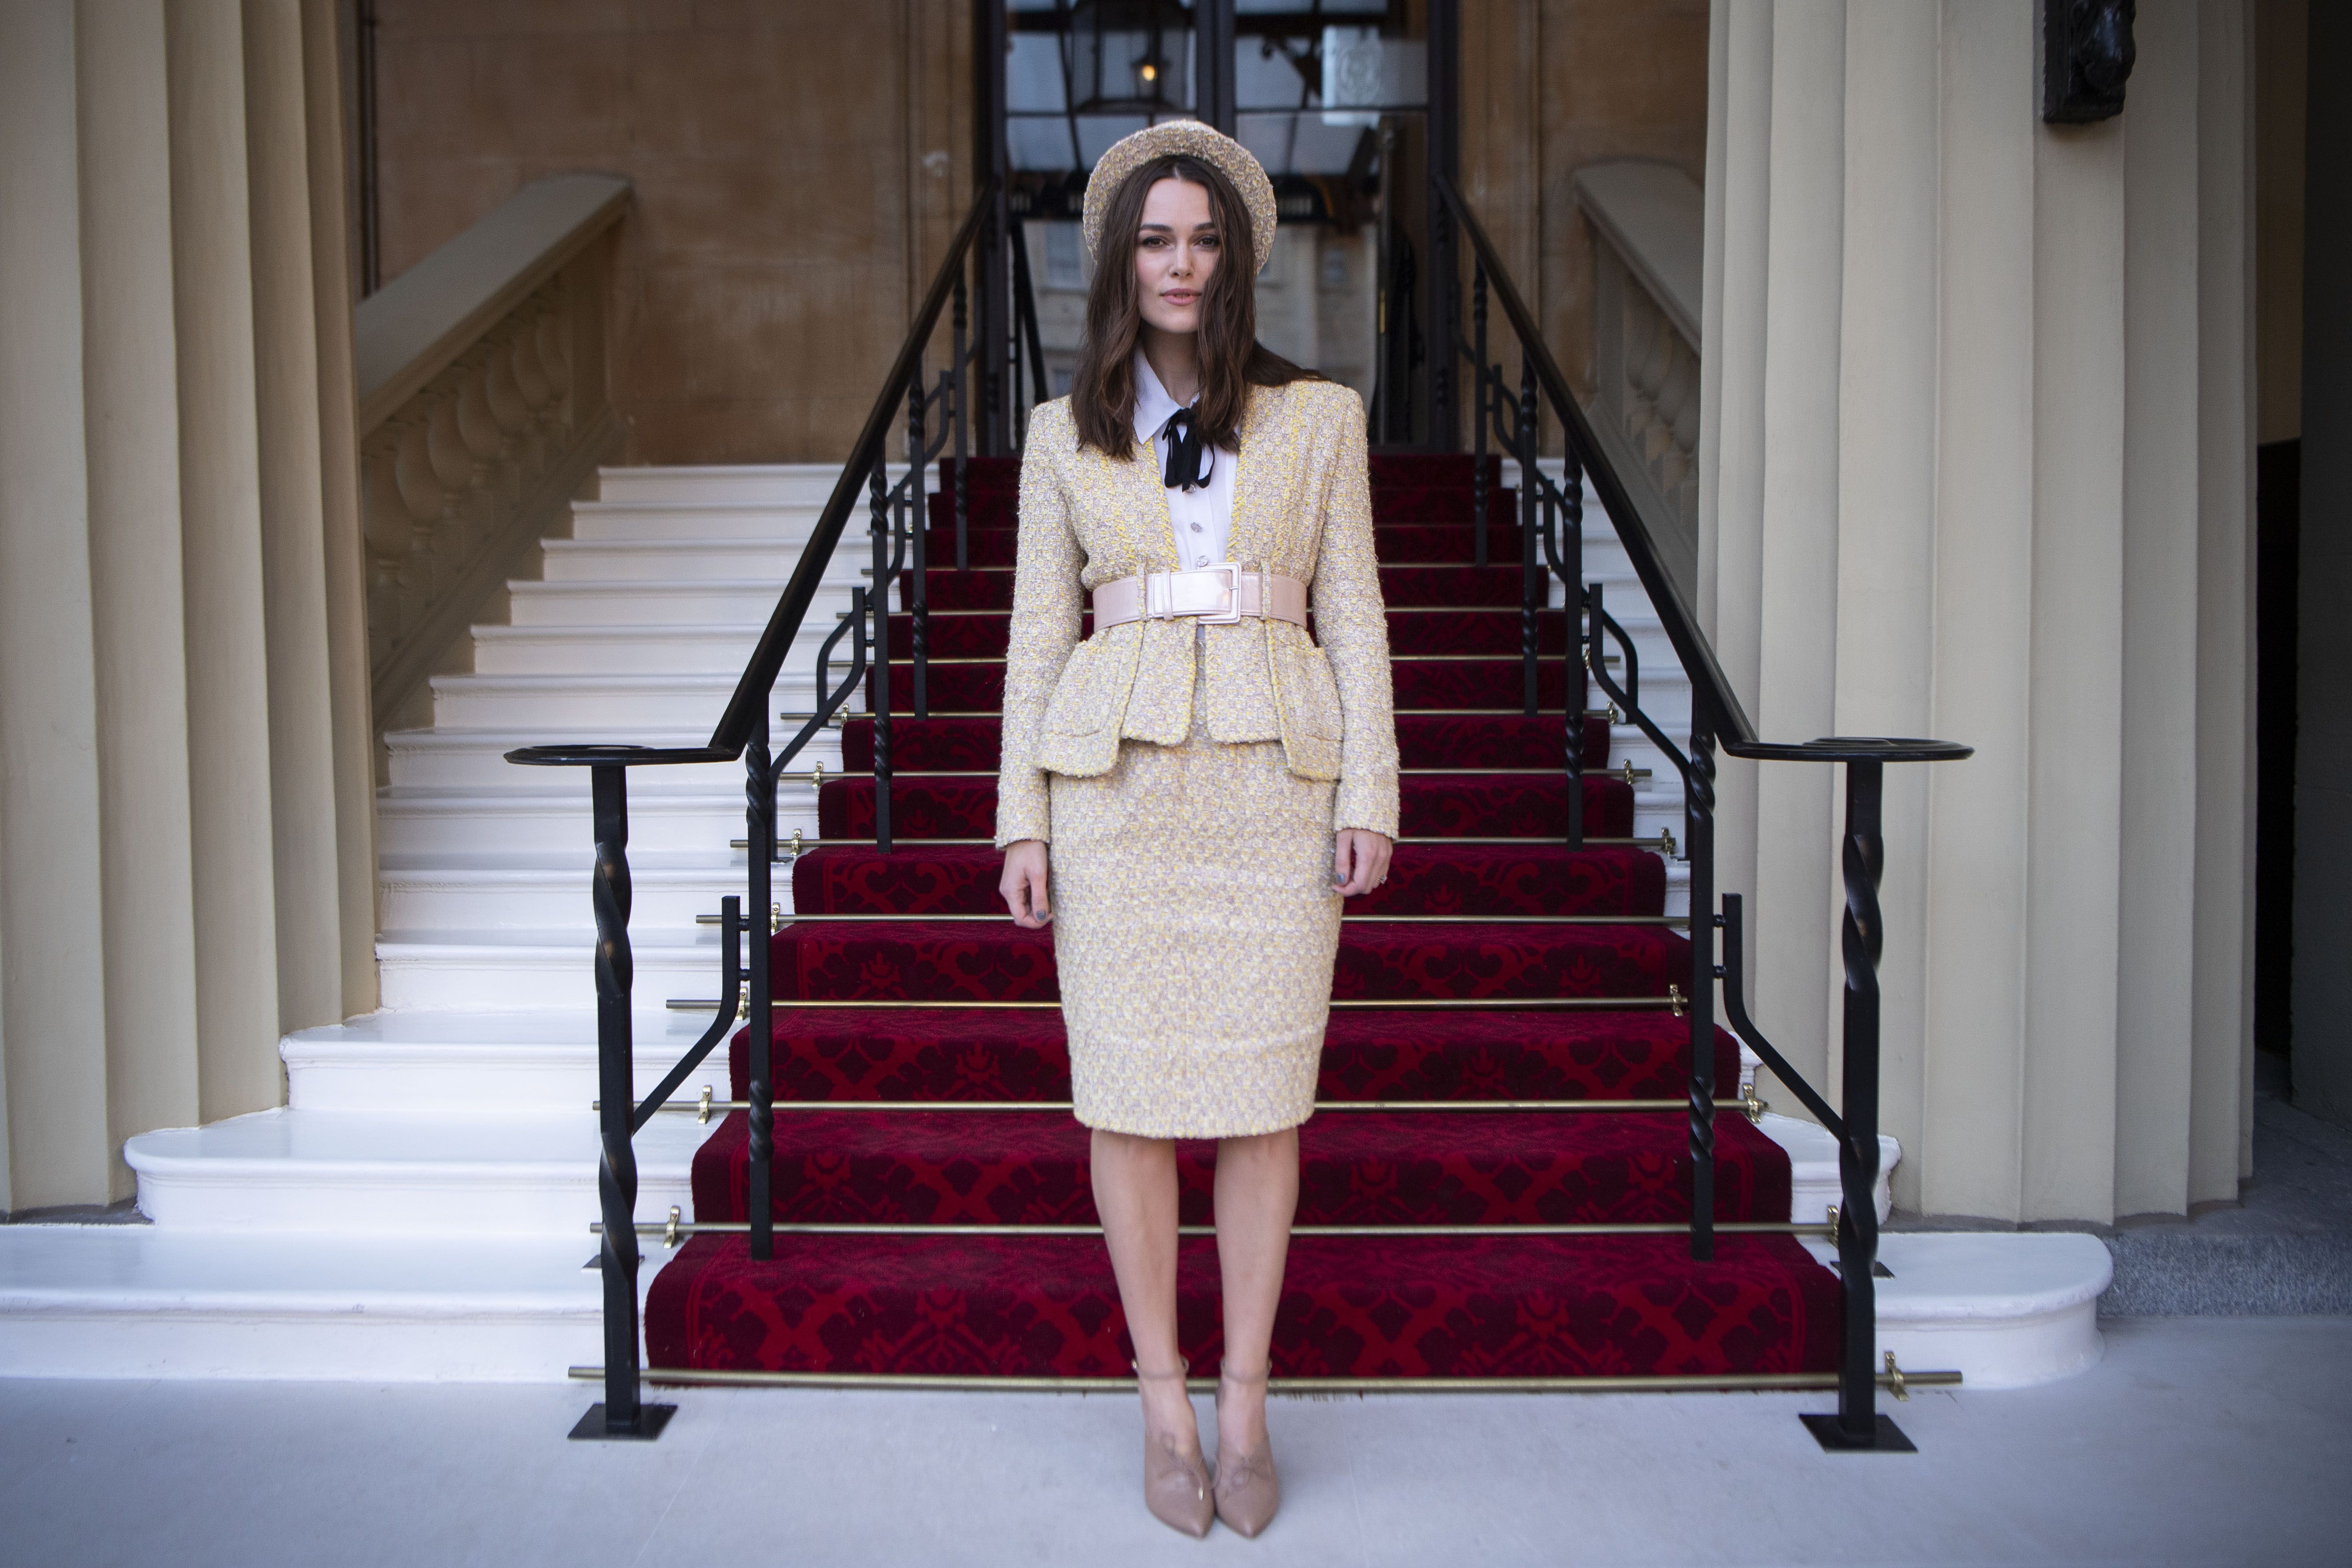 Keira Knightley's Style File: The Actresses' Most Classic And Show-Stopping Looks